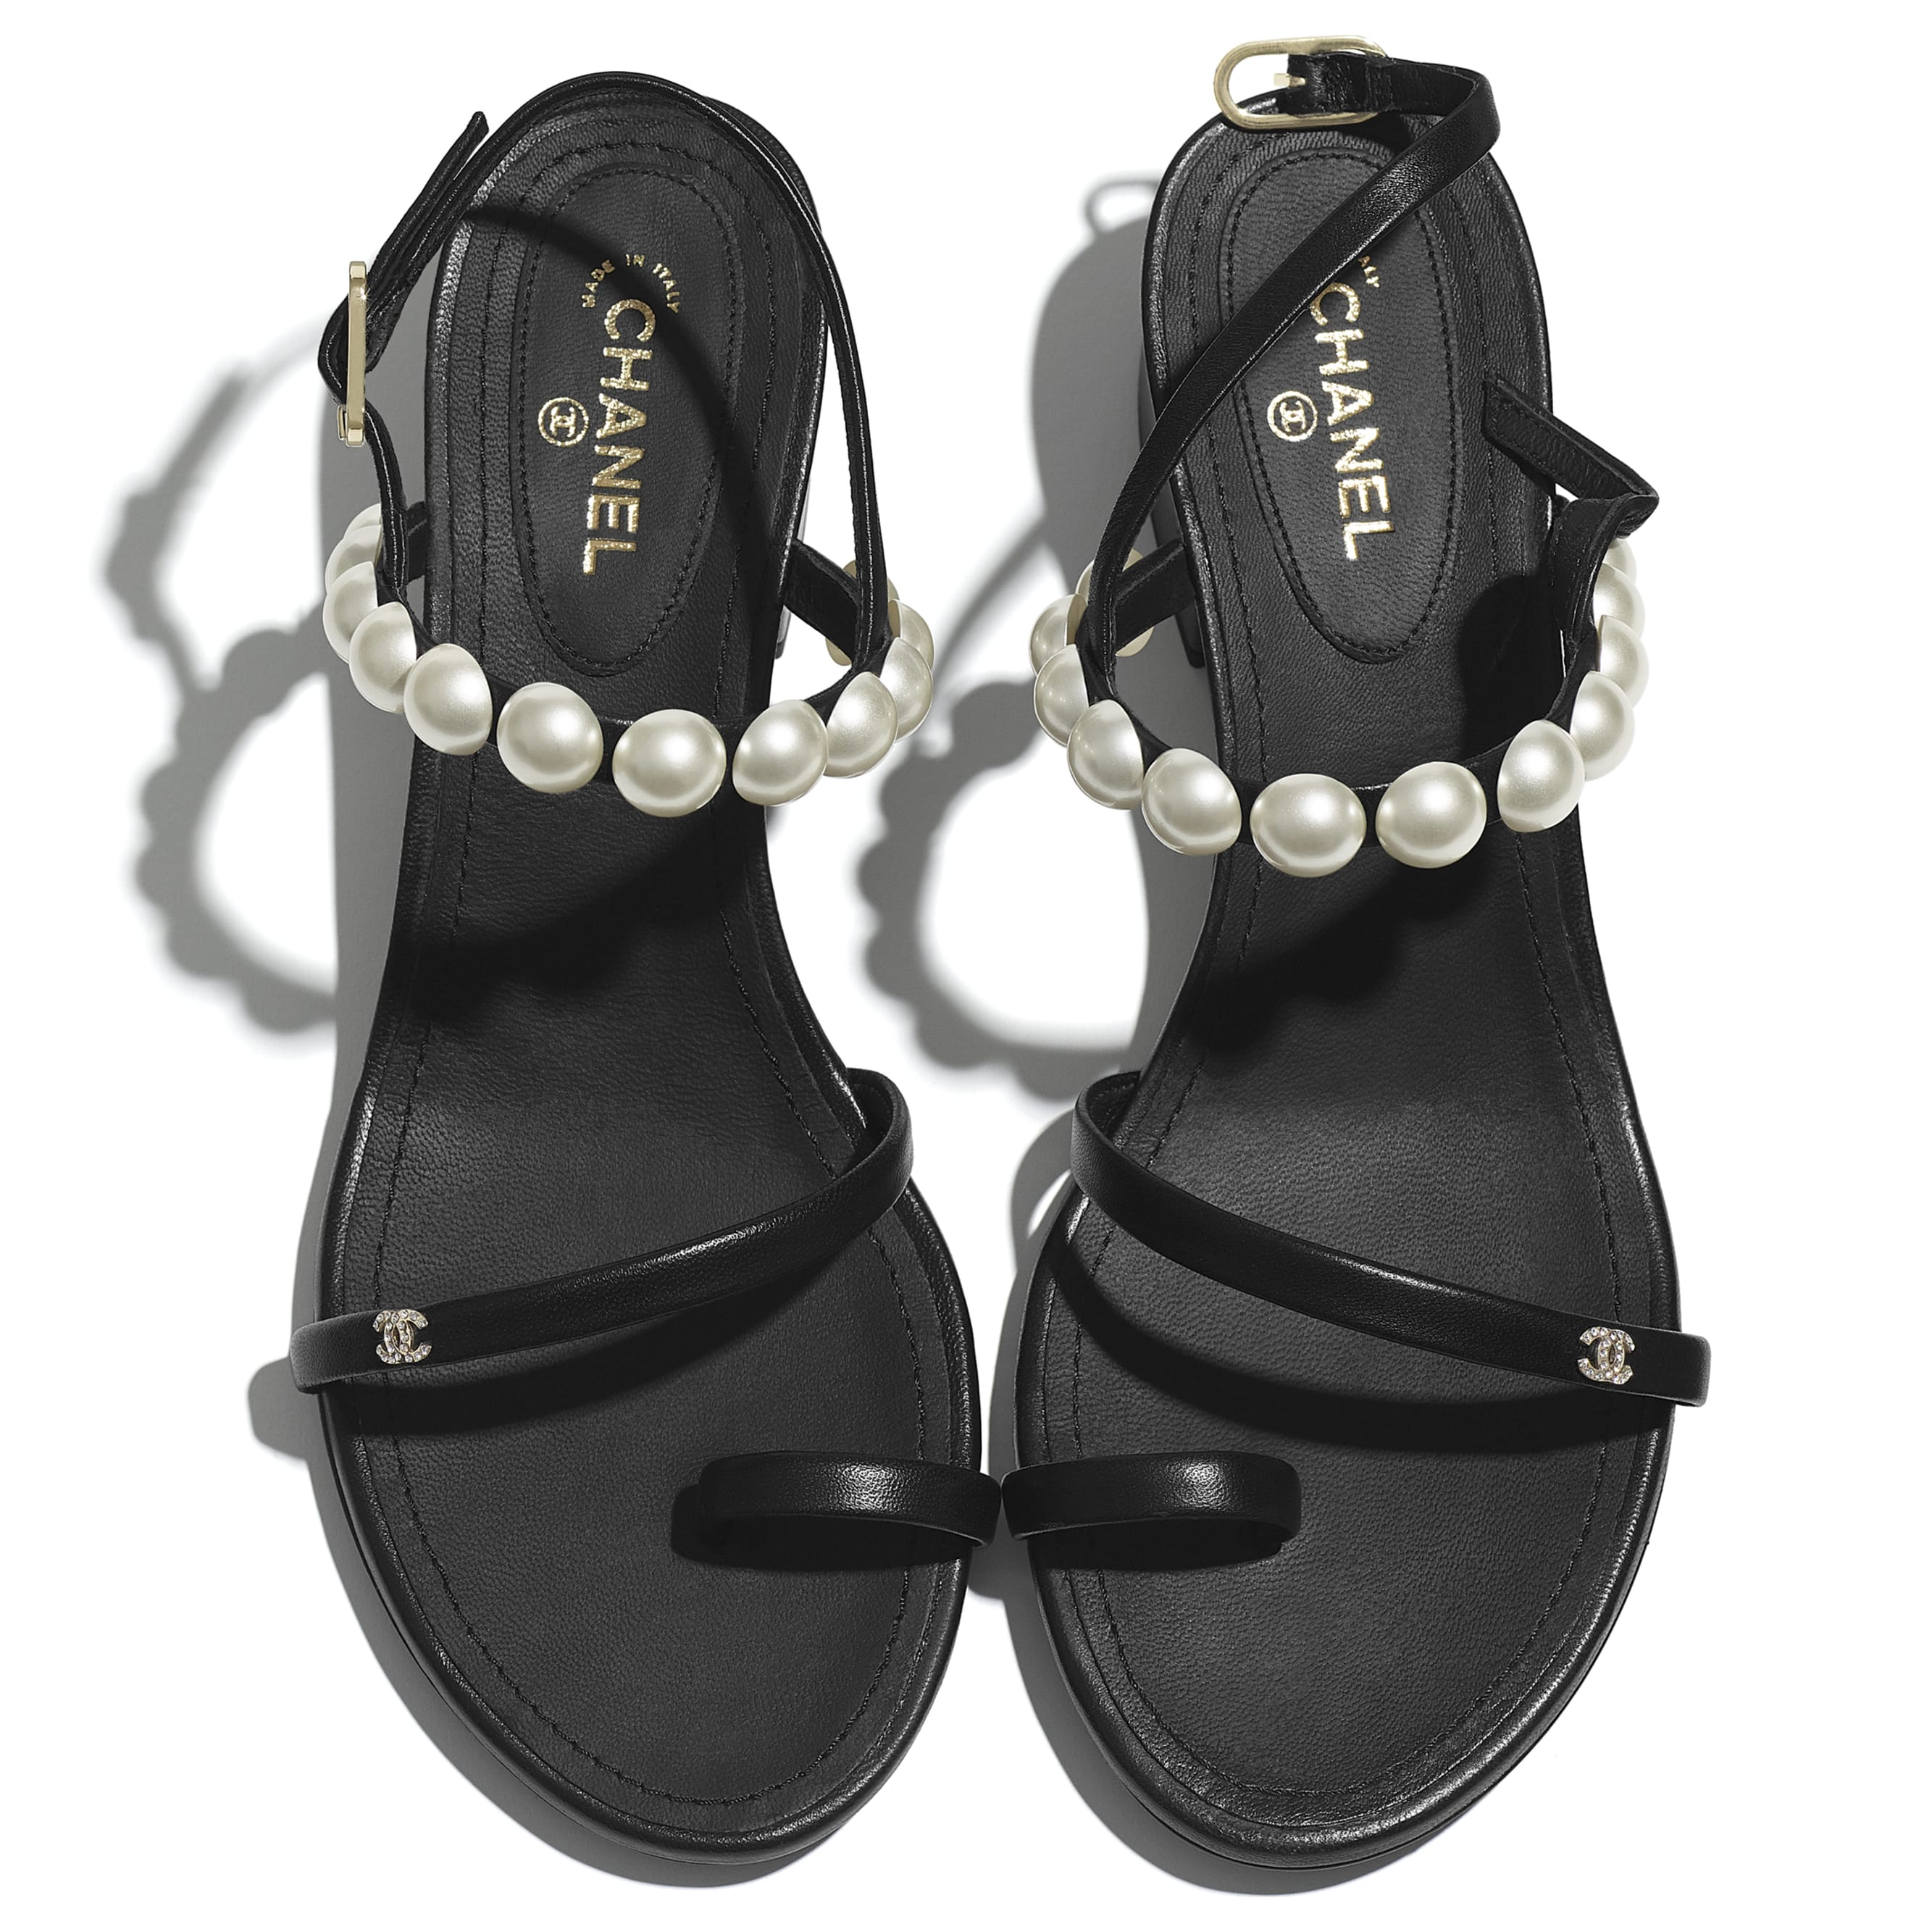 Sandals - Black - Lambskin & Pearls - CHANEL - Extra view - see standard sized version